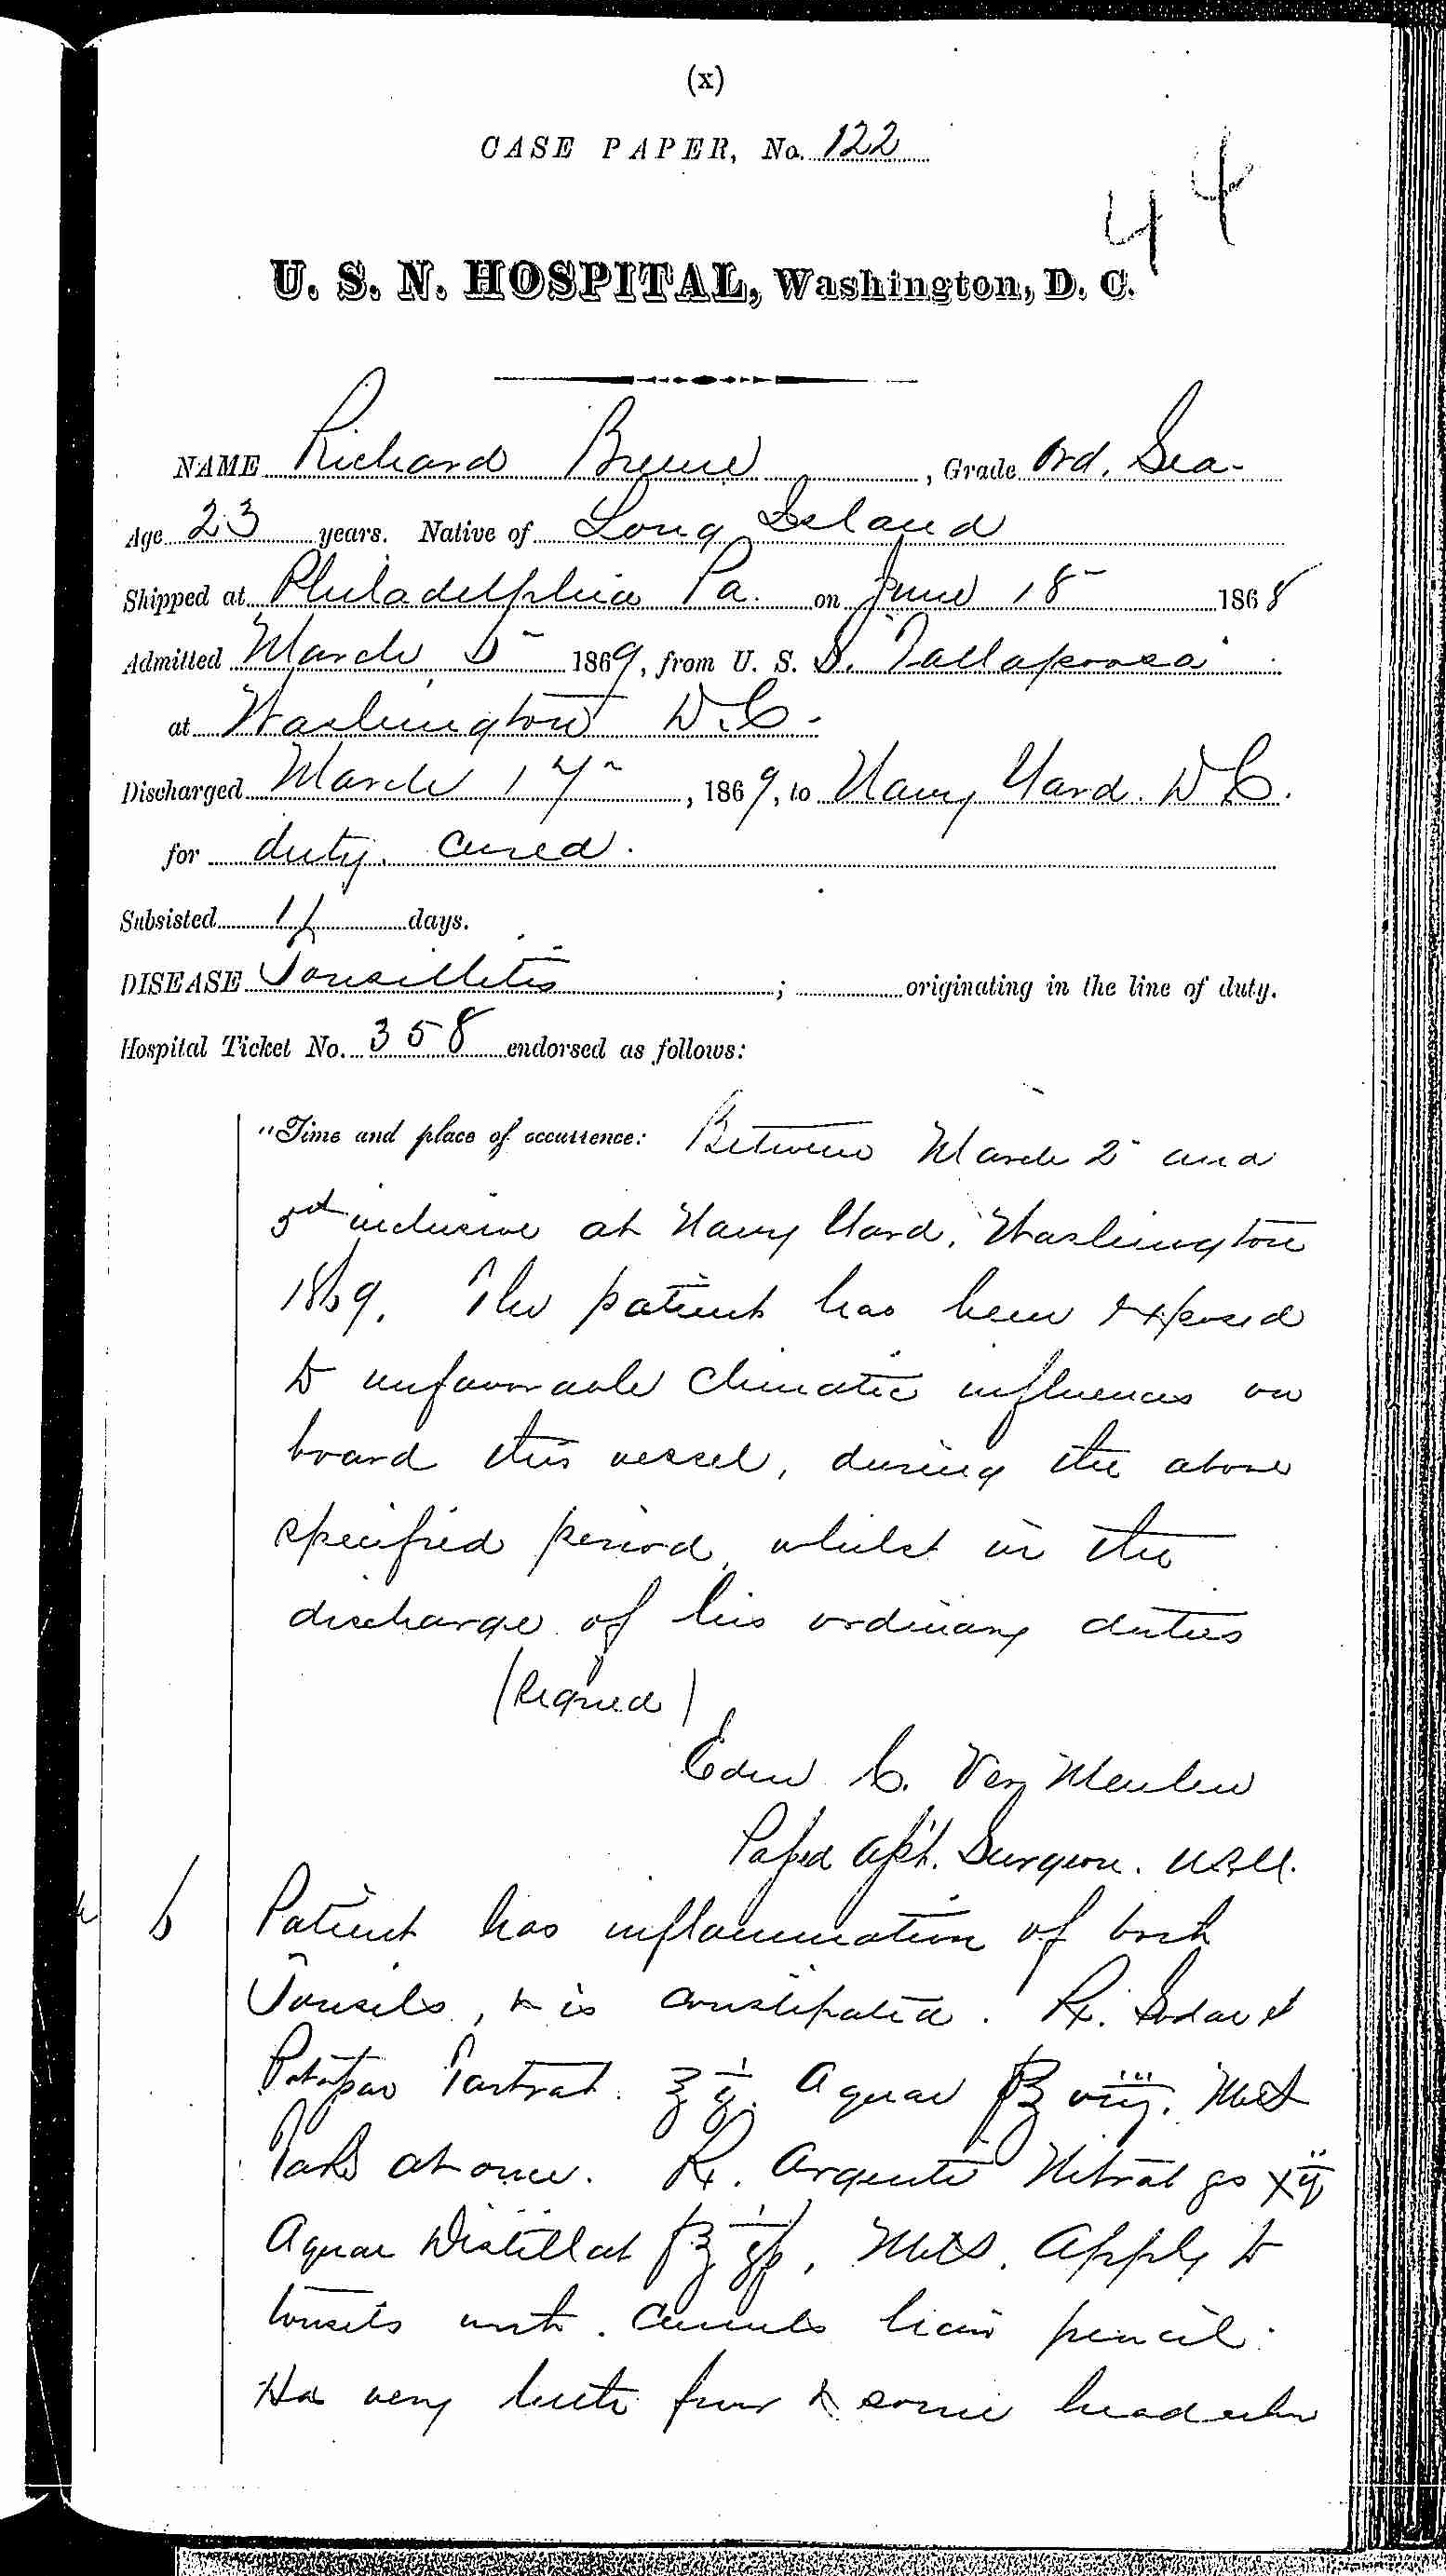 Entry for Richard Breene (page 1 of 2) in the log Hospital Tickets and Case Papers - Naval Hospital - Washington, D.C. - 1868-69